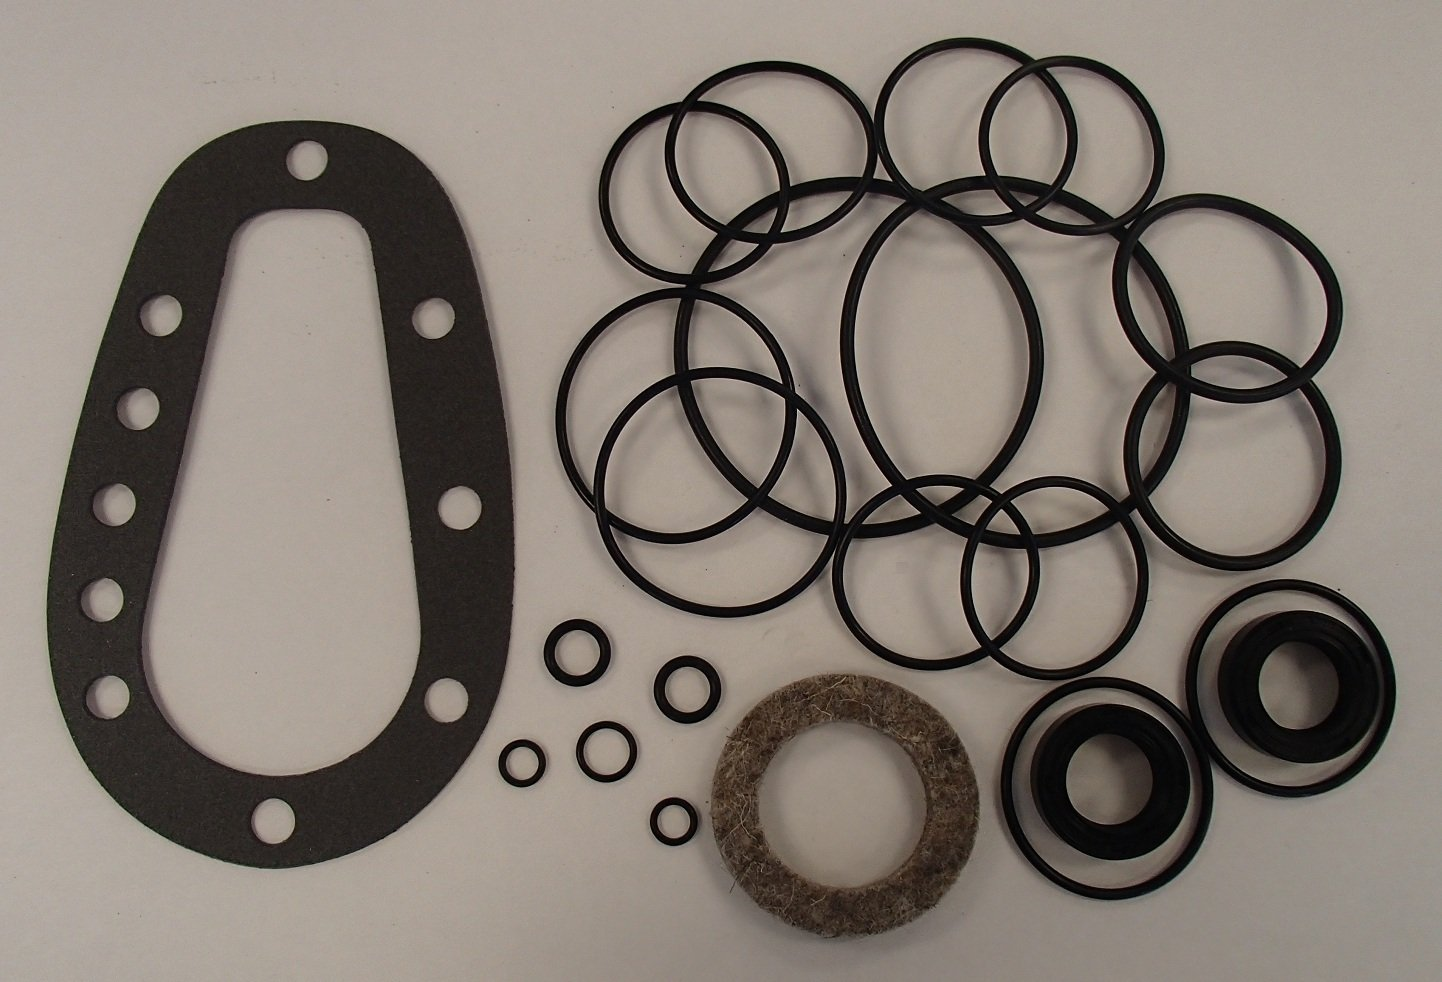 EDPN3500A Steering Seal Kit Made For Ford Power 4000 4600 5000 5600 6600 7000 7600